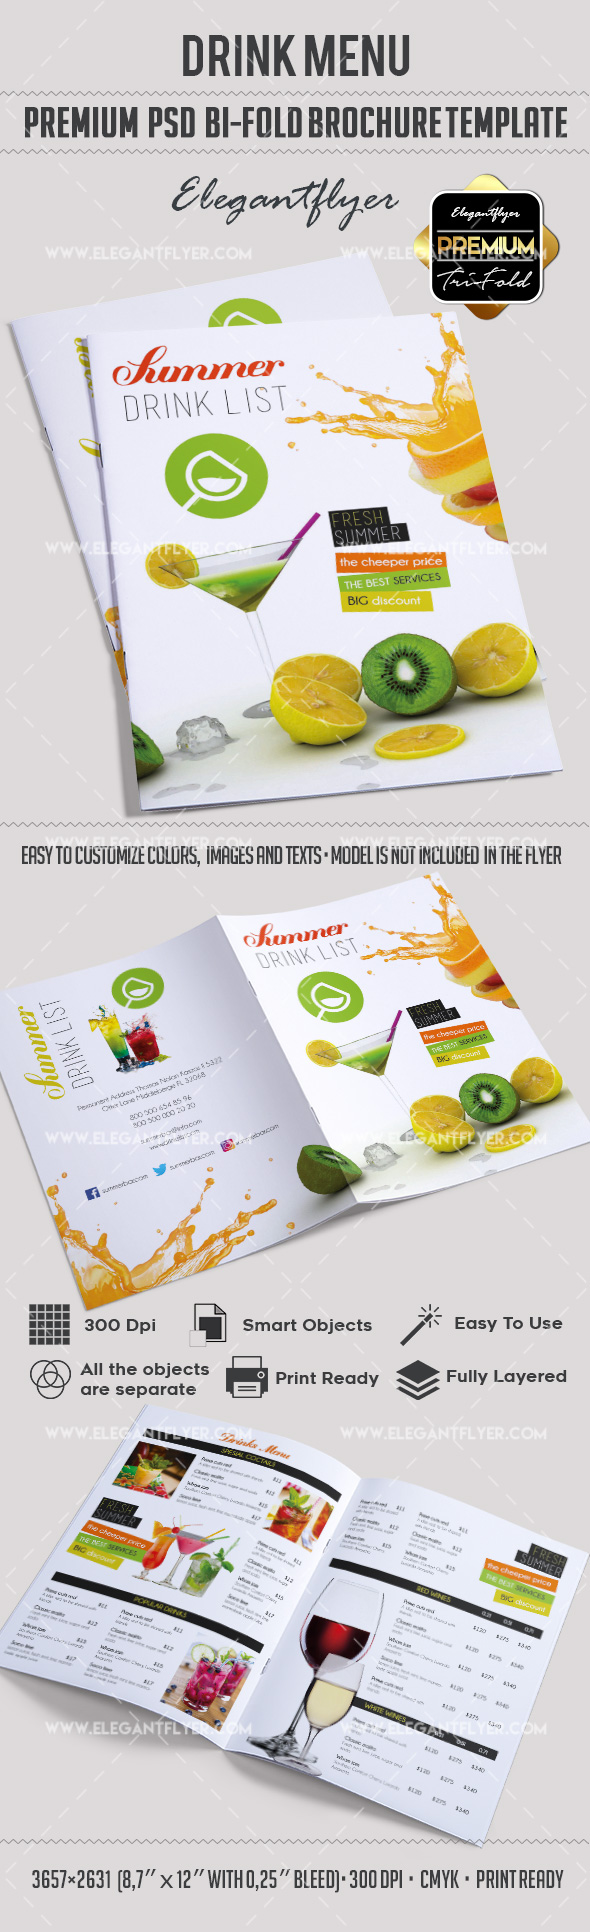 Bi-Fold Brochure for Bar Menu